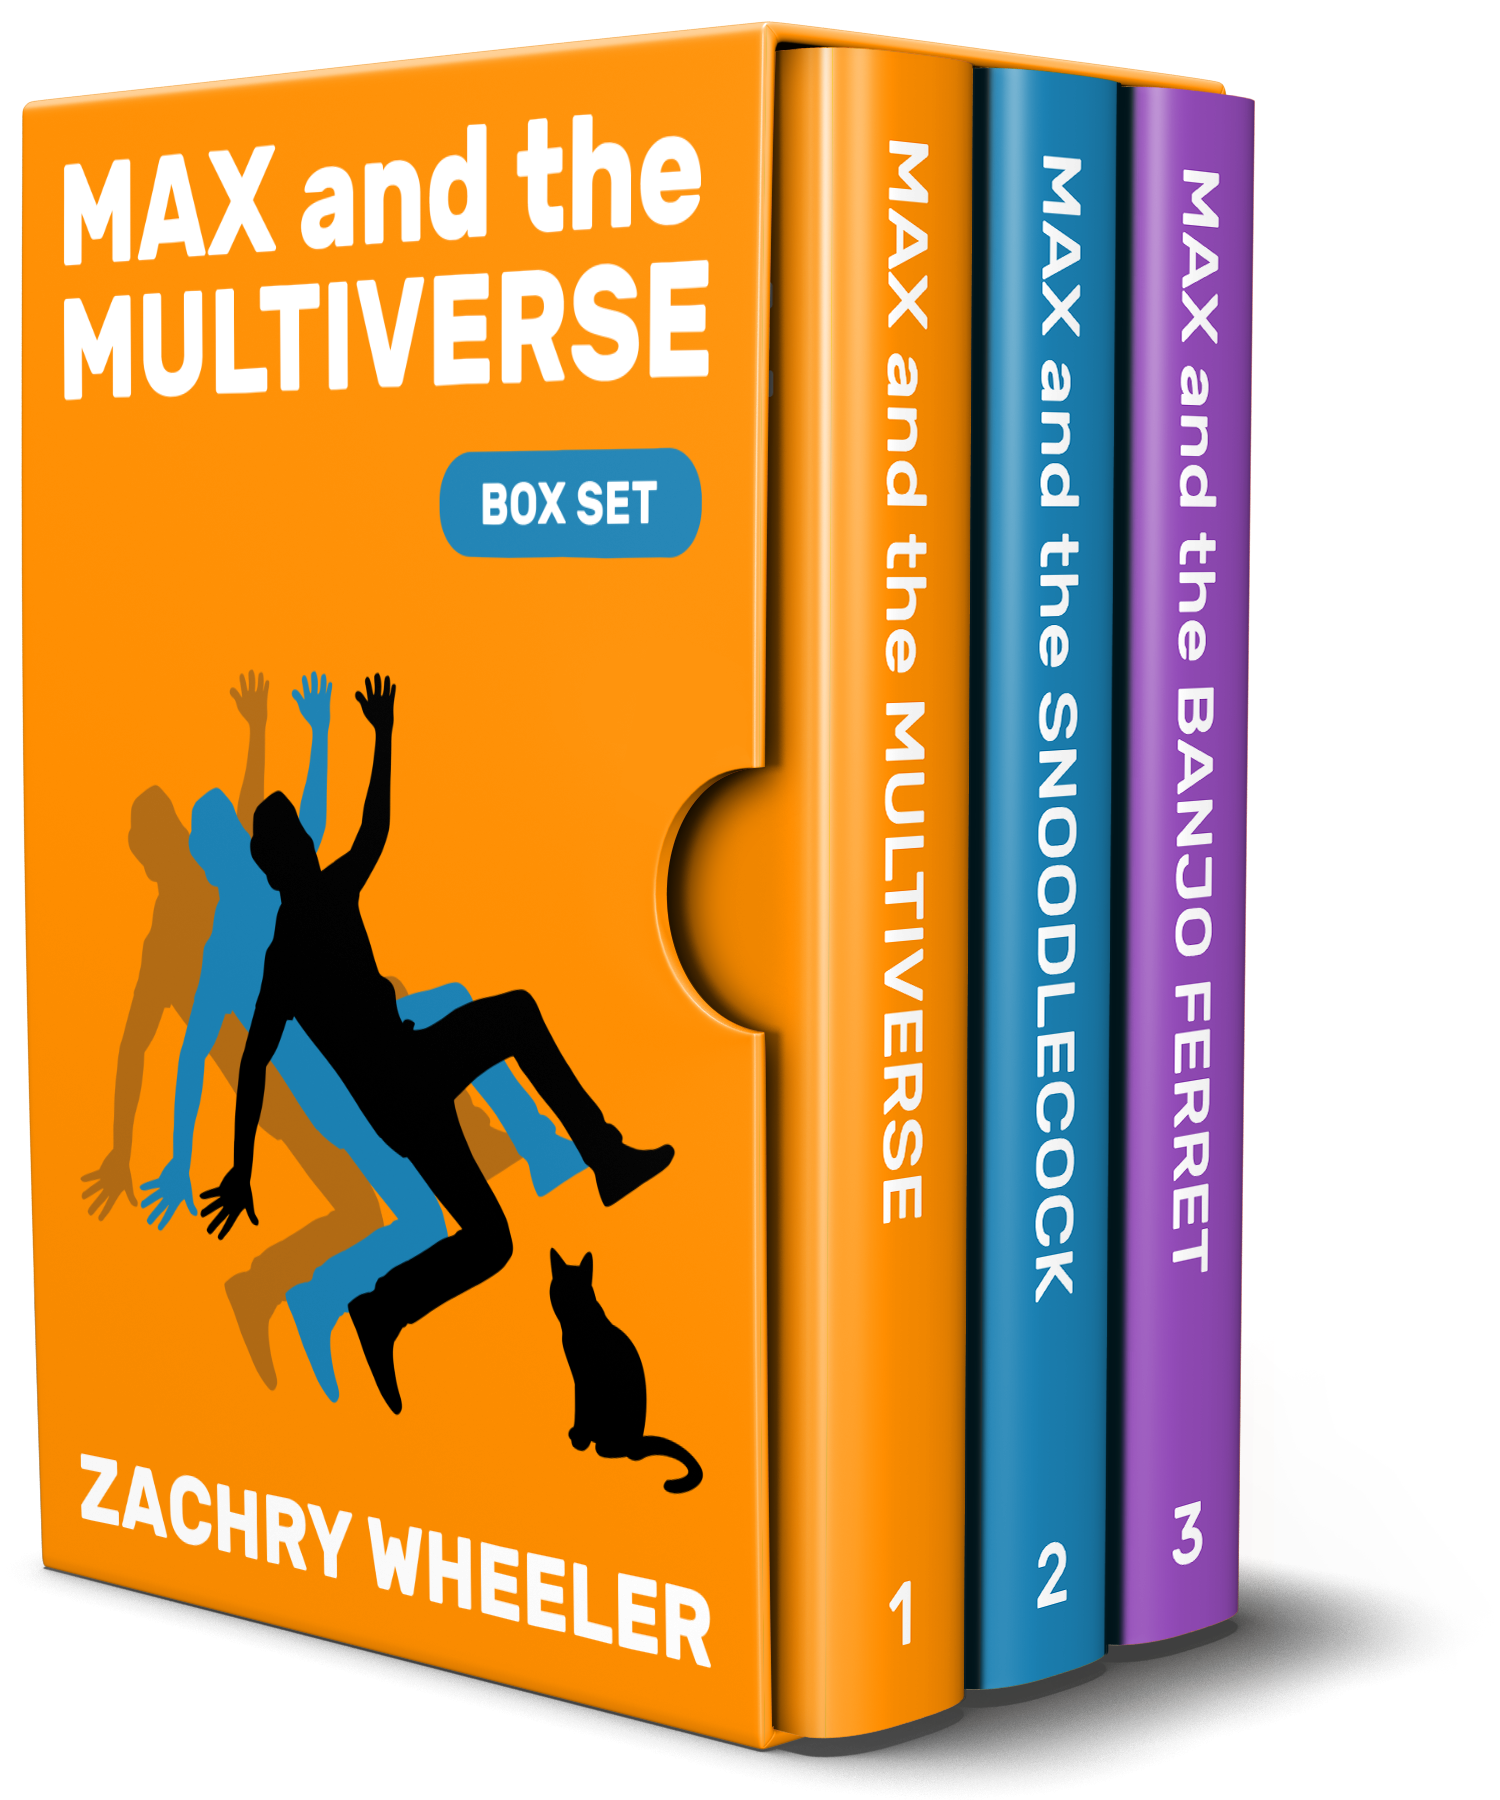 Learn more about the Max and the Multiverse Box Set (3 Books, 3 Shorts)